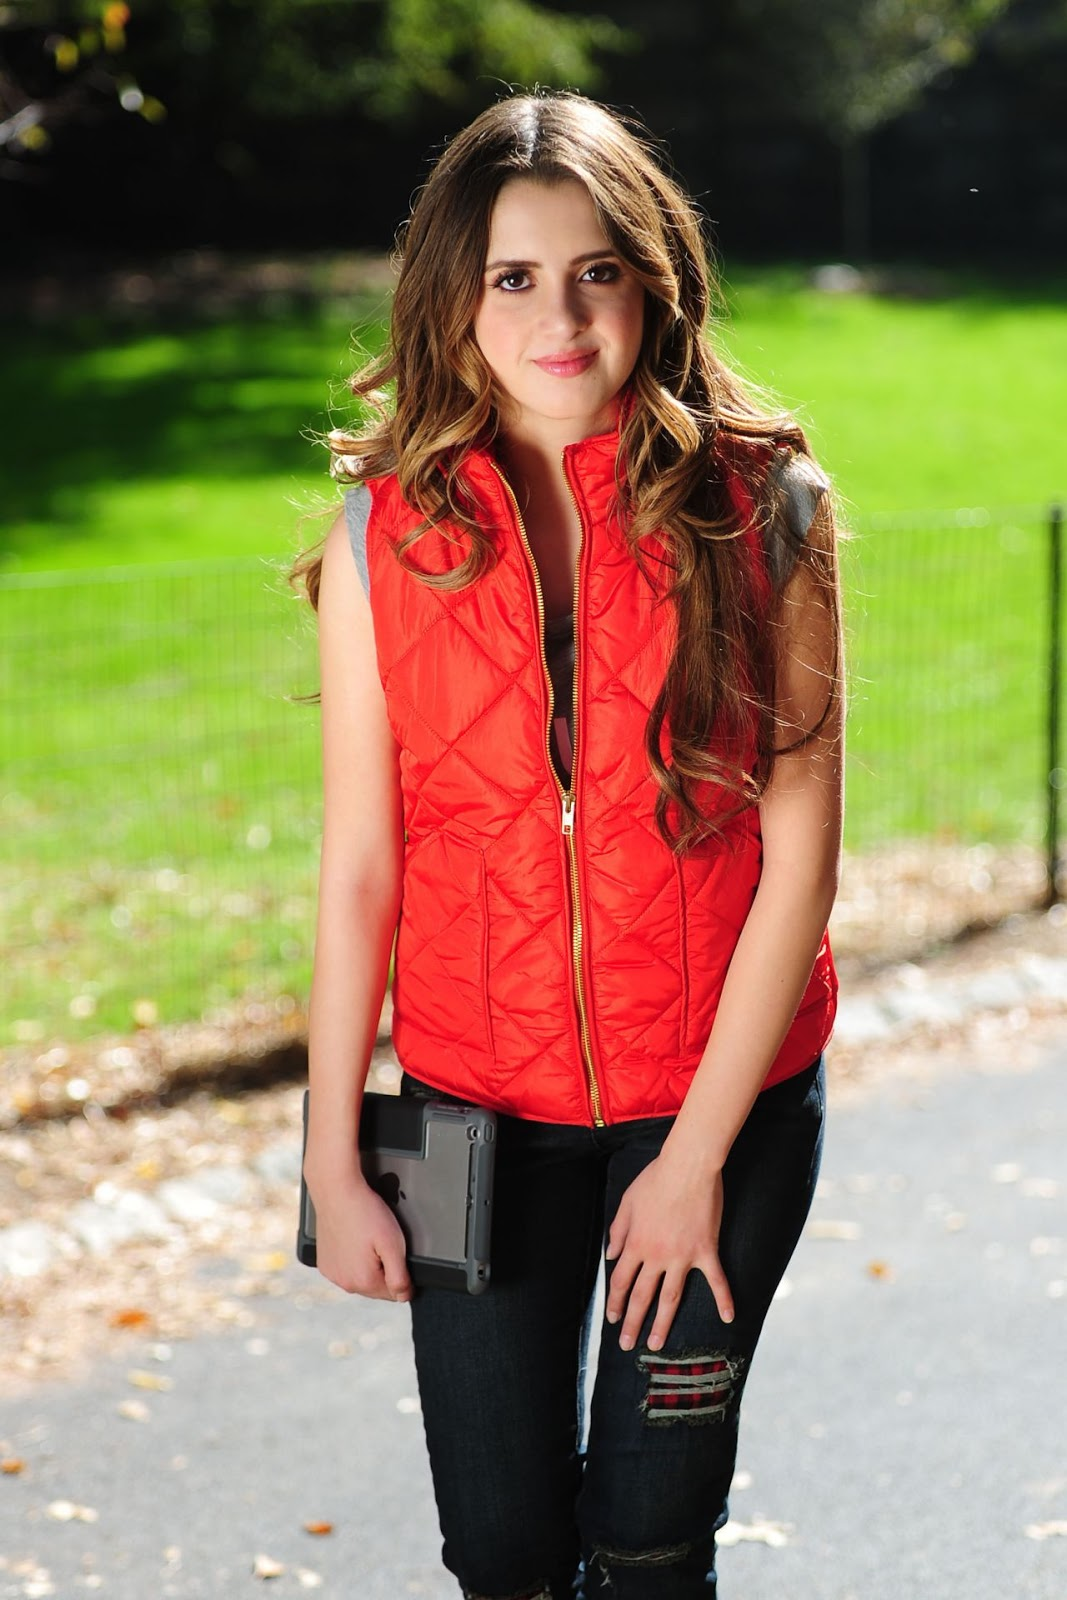 Laura Marano 2016 - Laura Marano for Photoshoot in New York